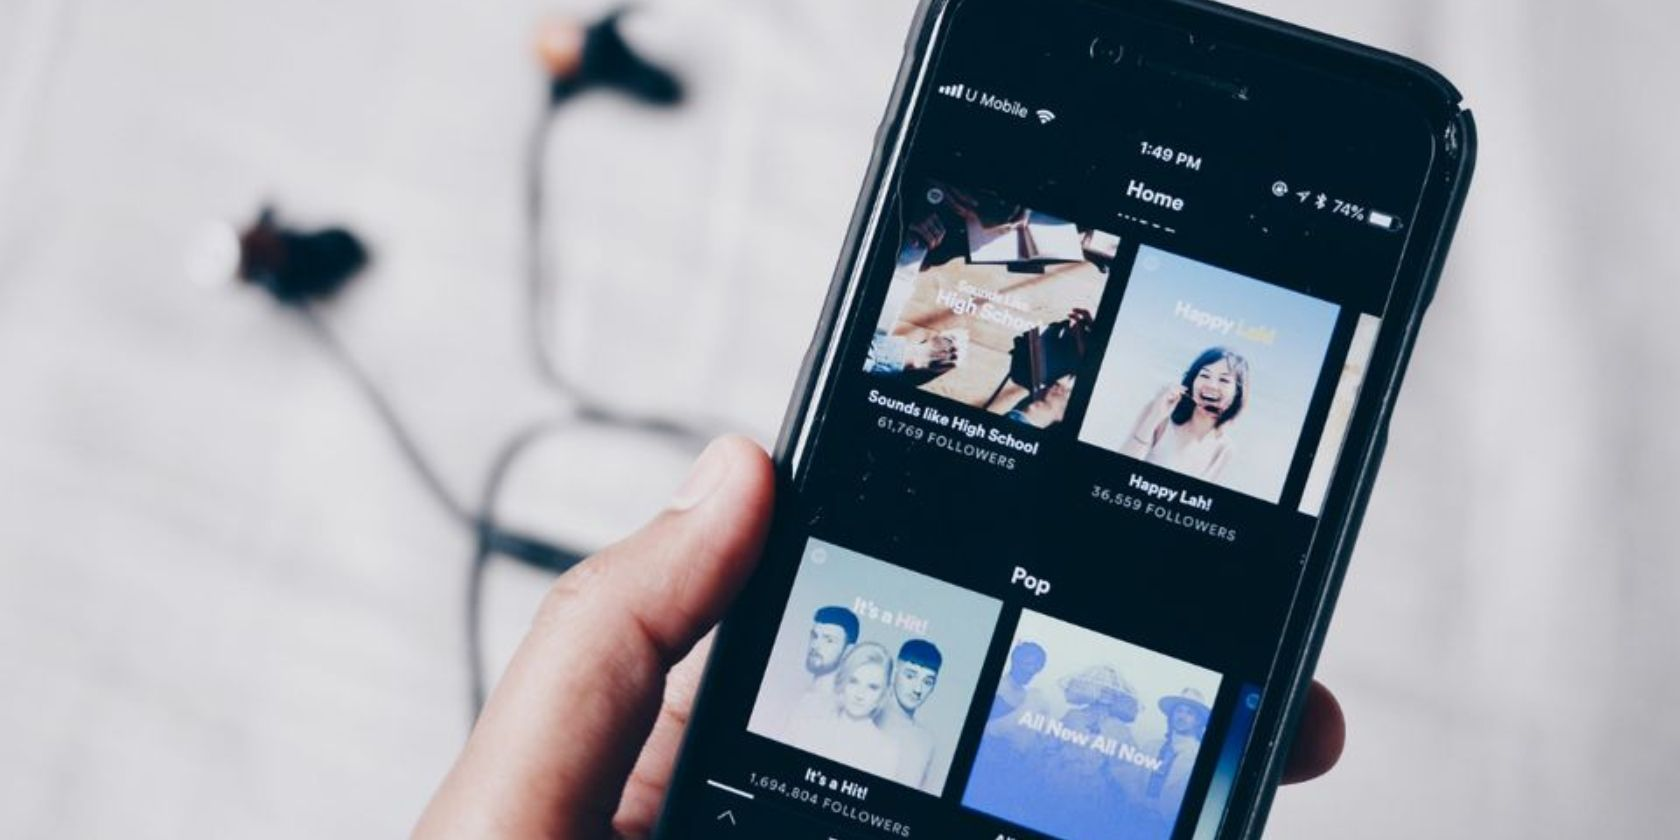 Spotify vs. Apple Music: What's the Best Music Streaming Service?